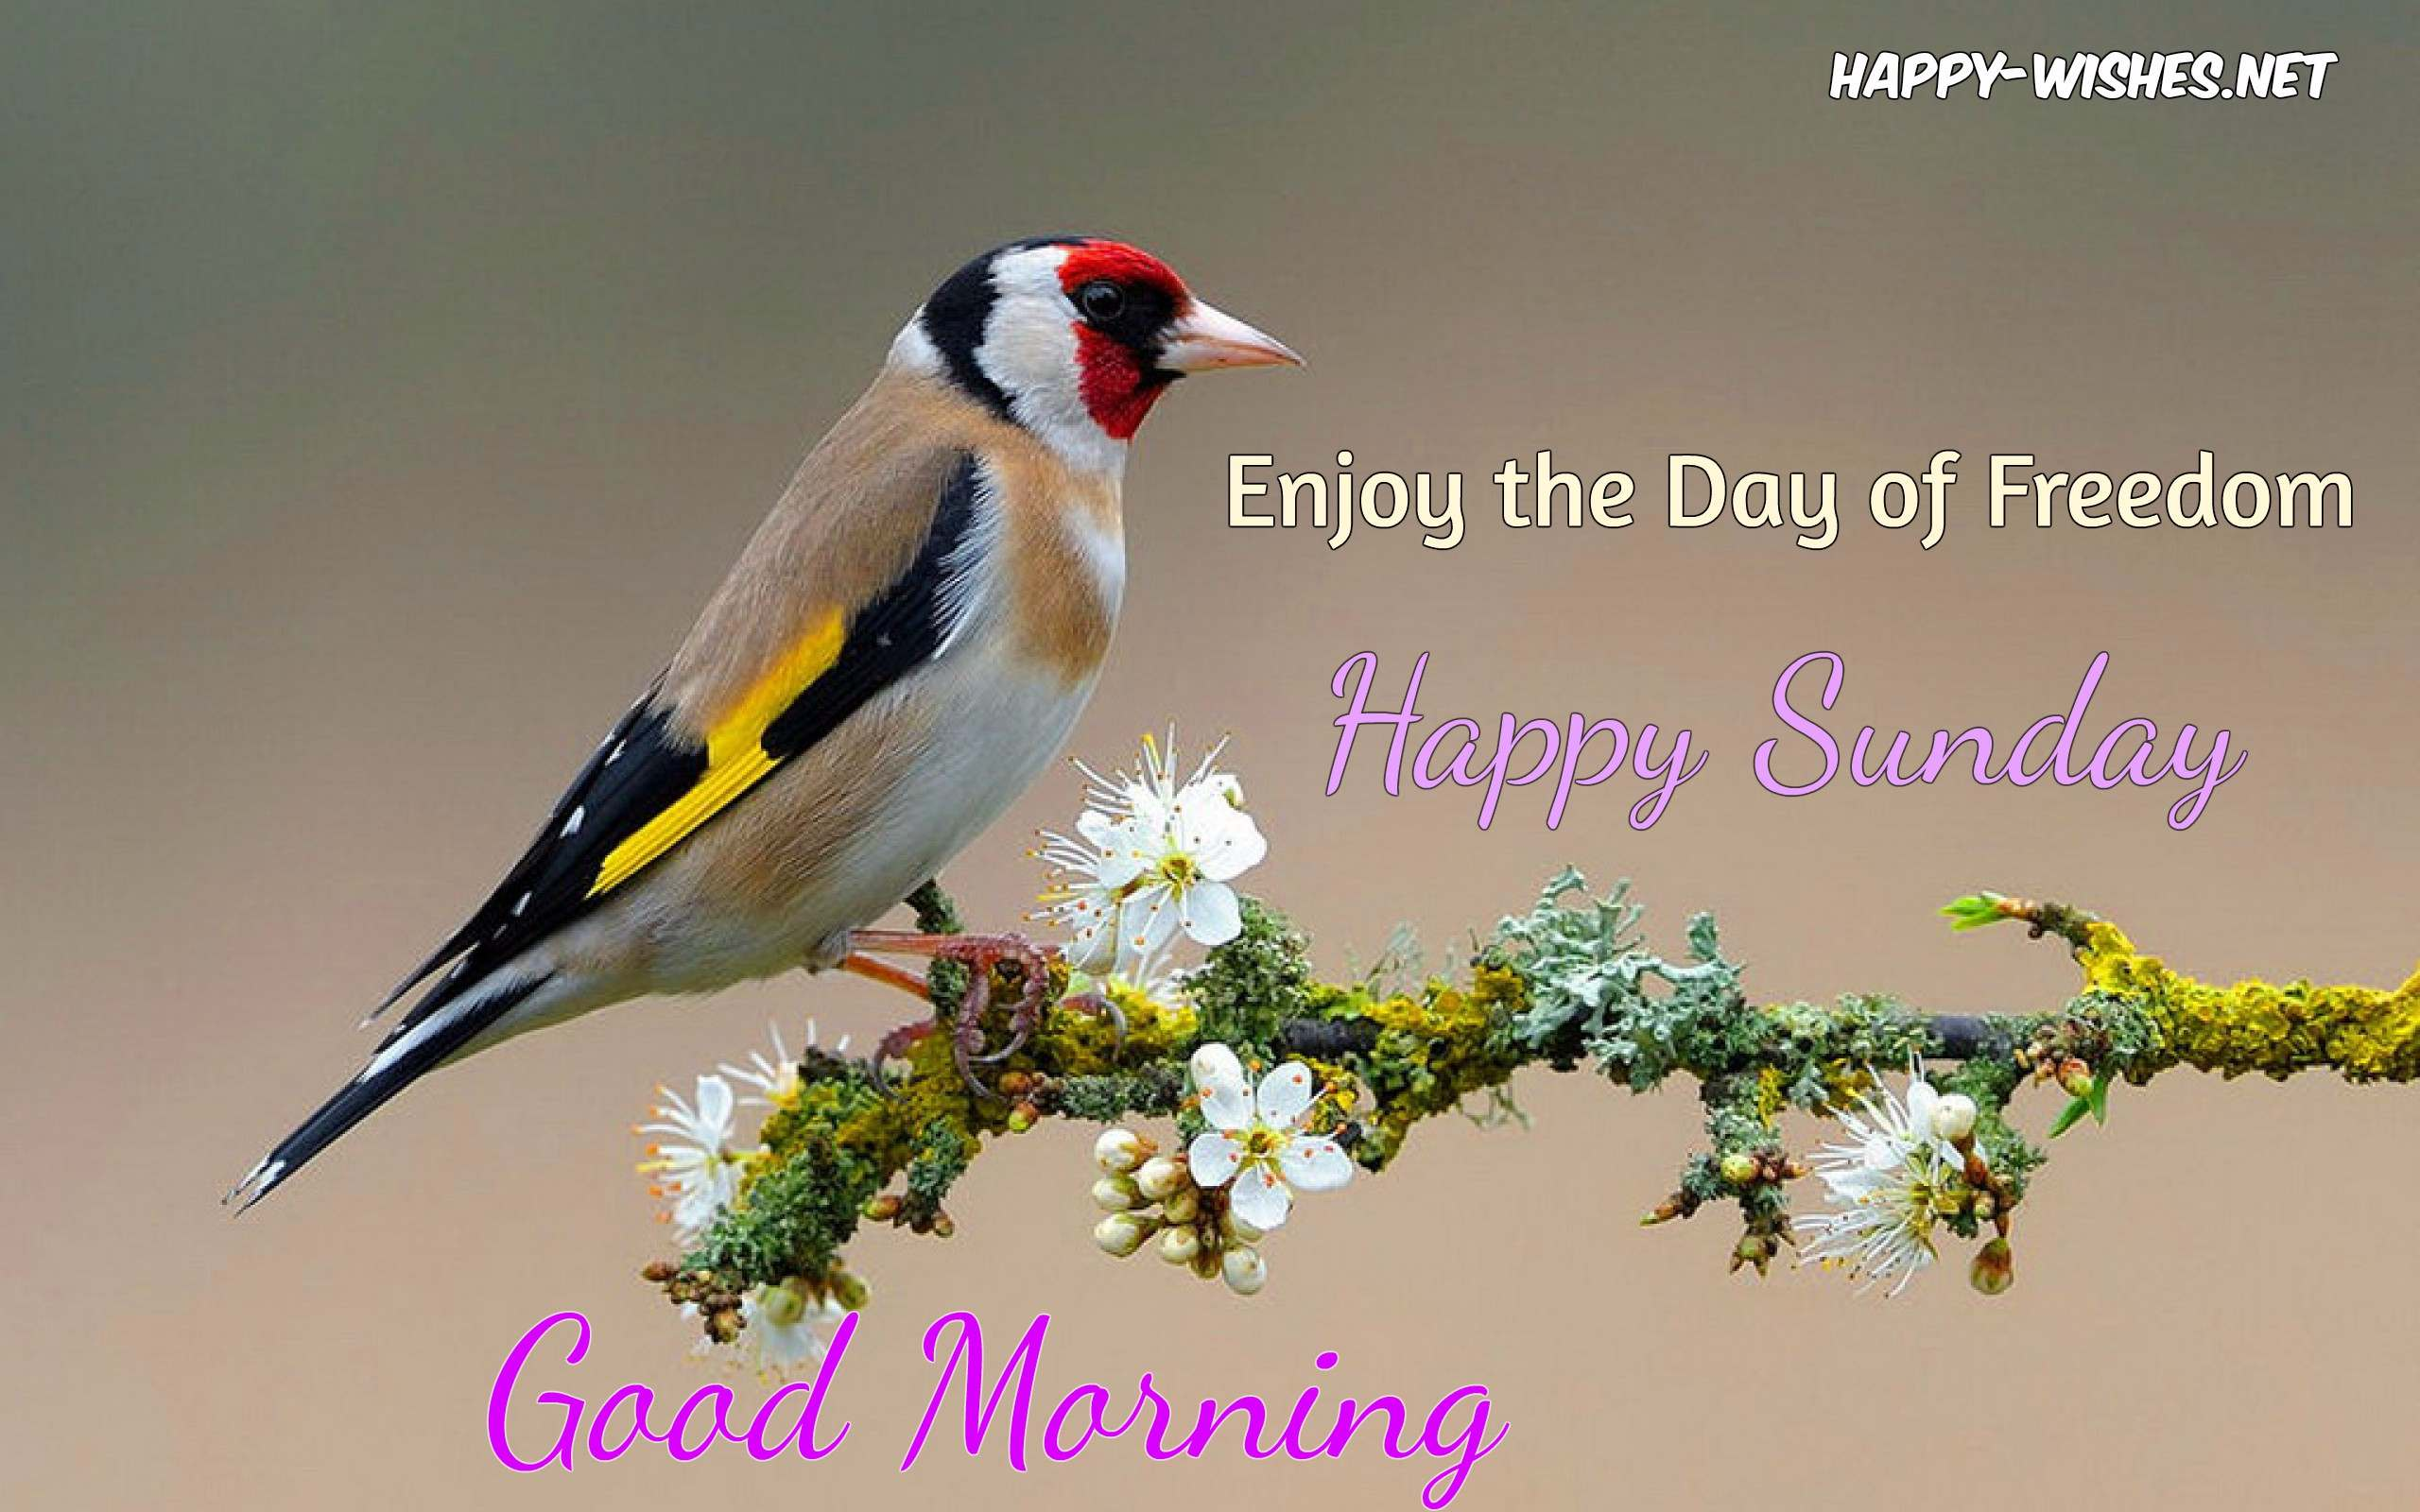 Good Morning Wishes On Sunday - Quotes , Images and Pictures